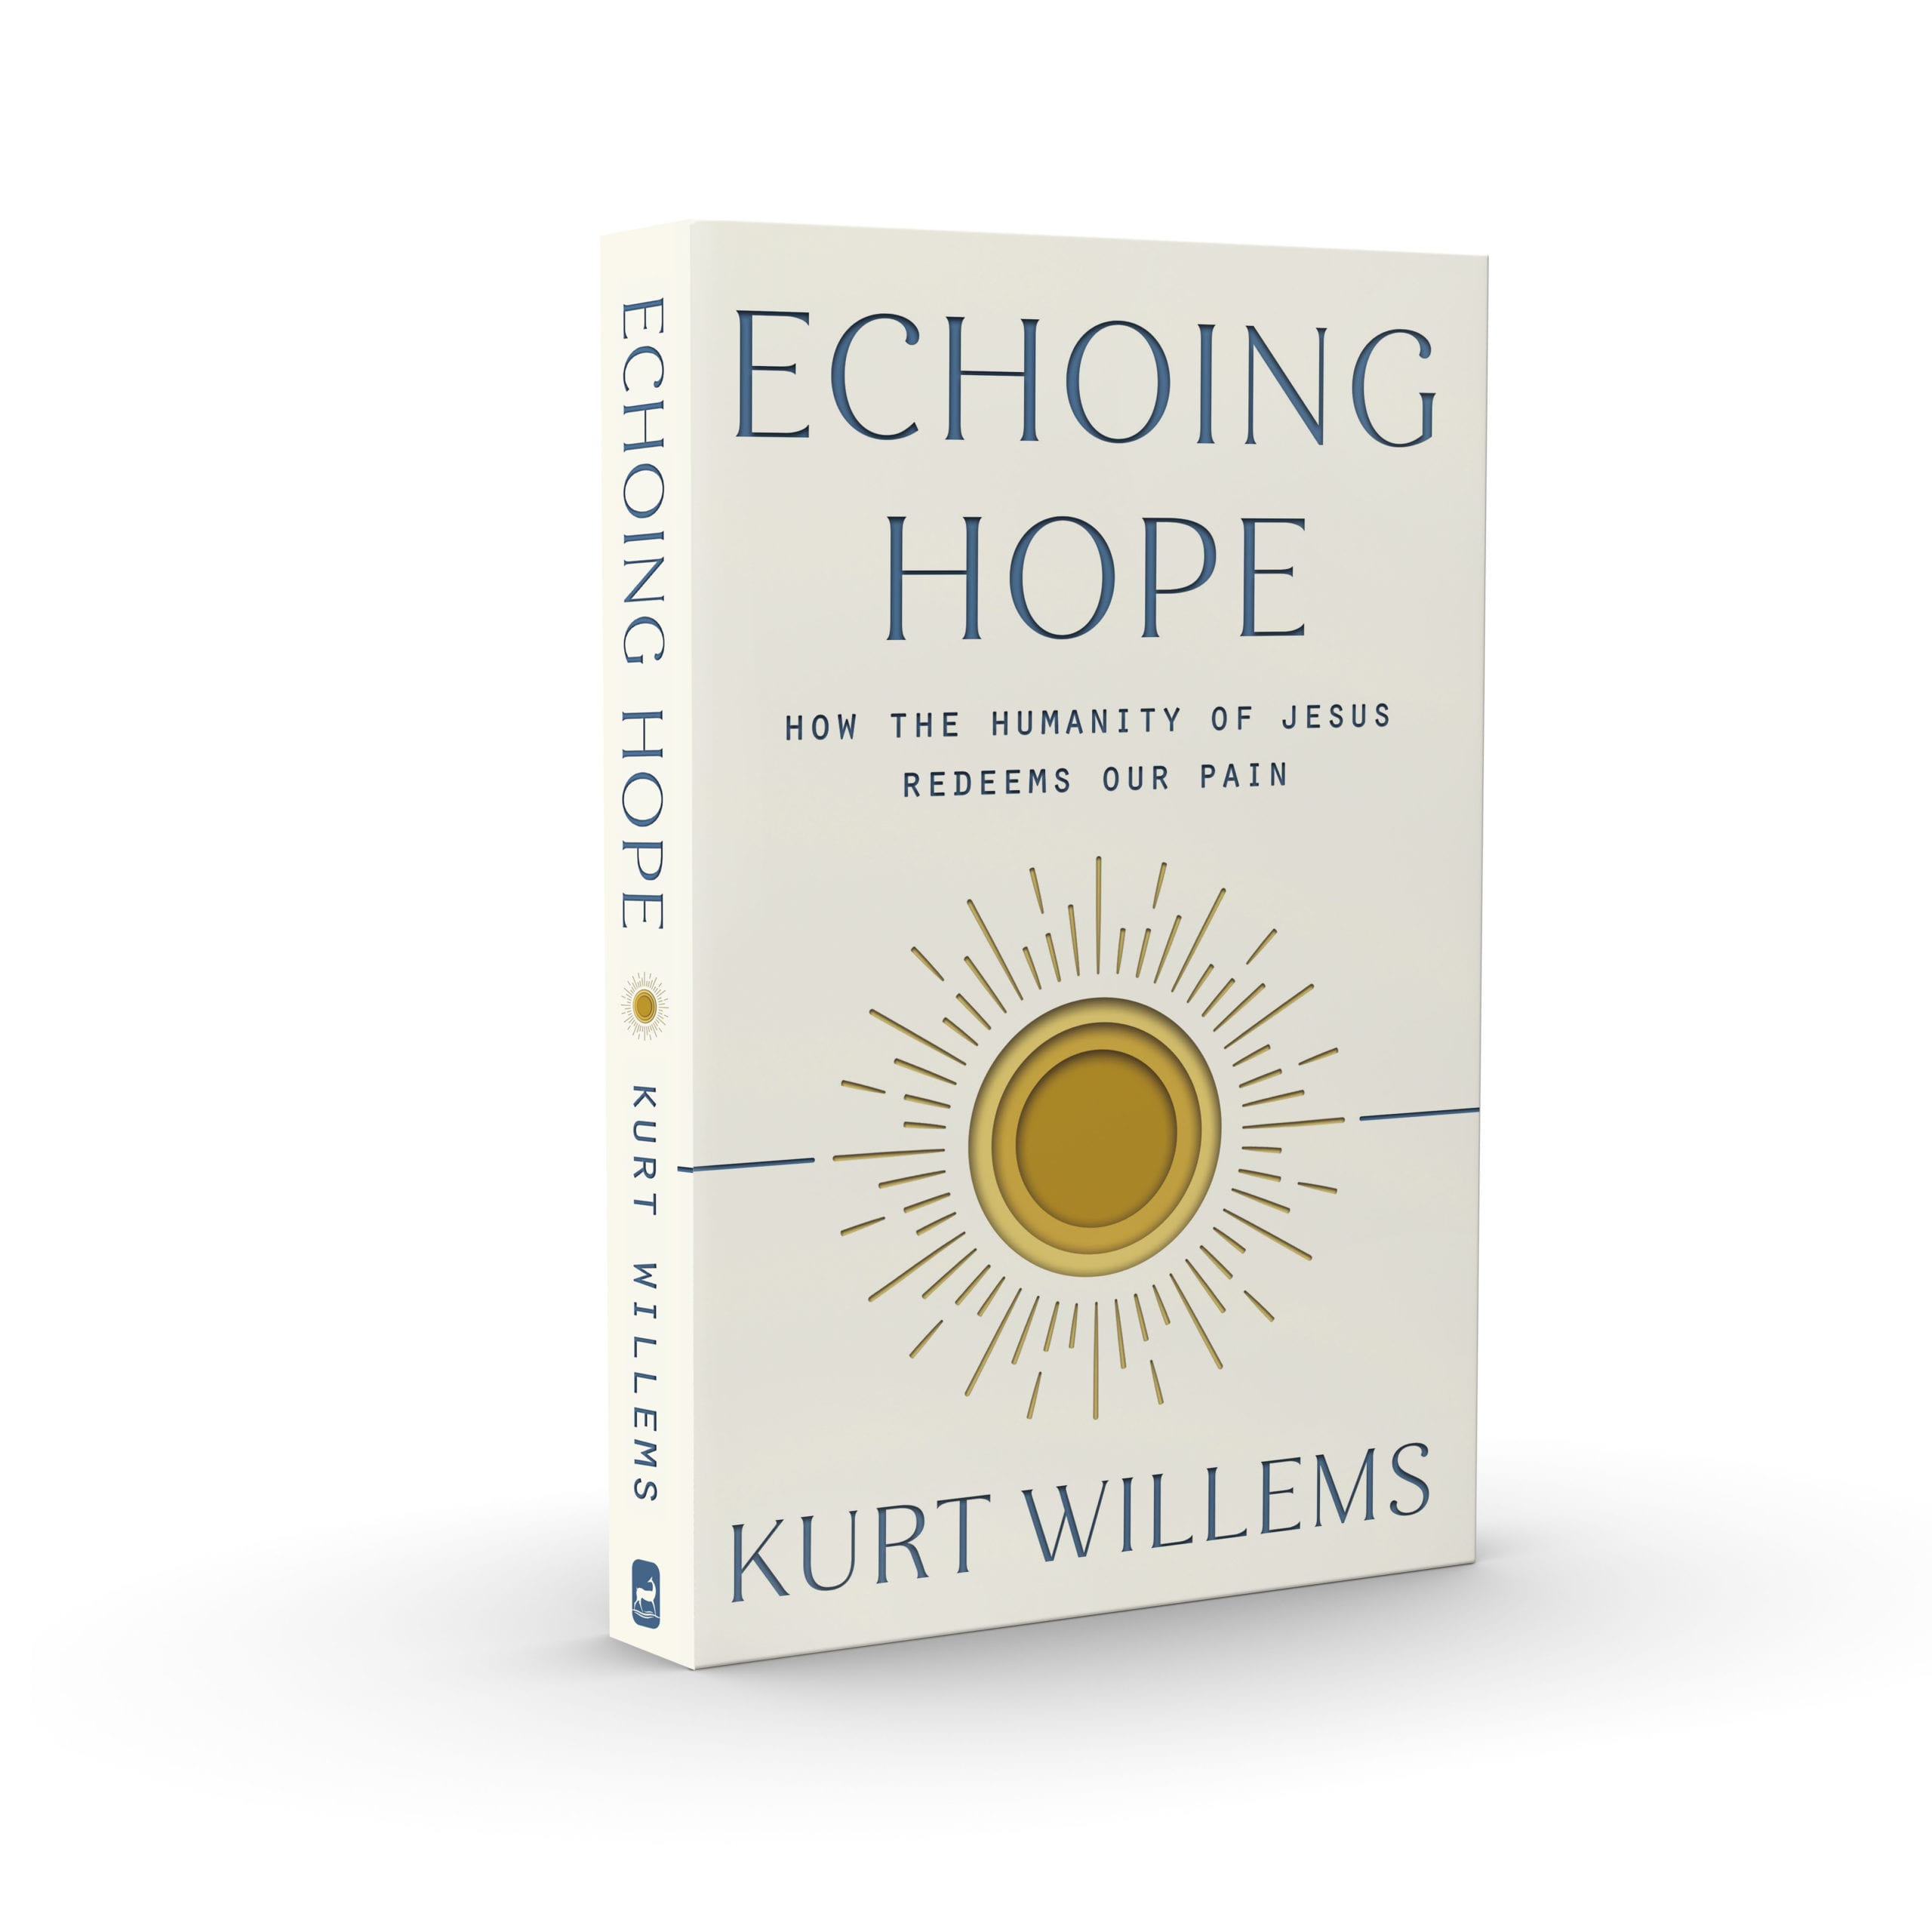 https://waterbrookmultnomah.com/books/652046/echoing-hope-by-kurt-willems-foreword-by-scot-mcknight/